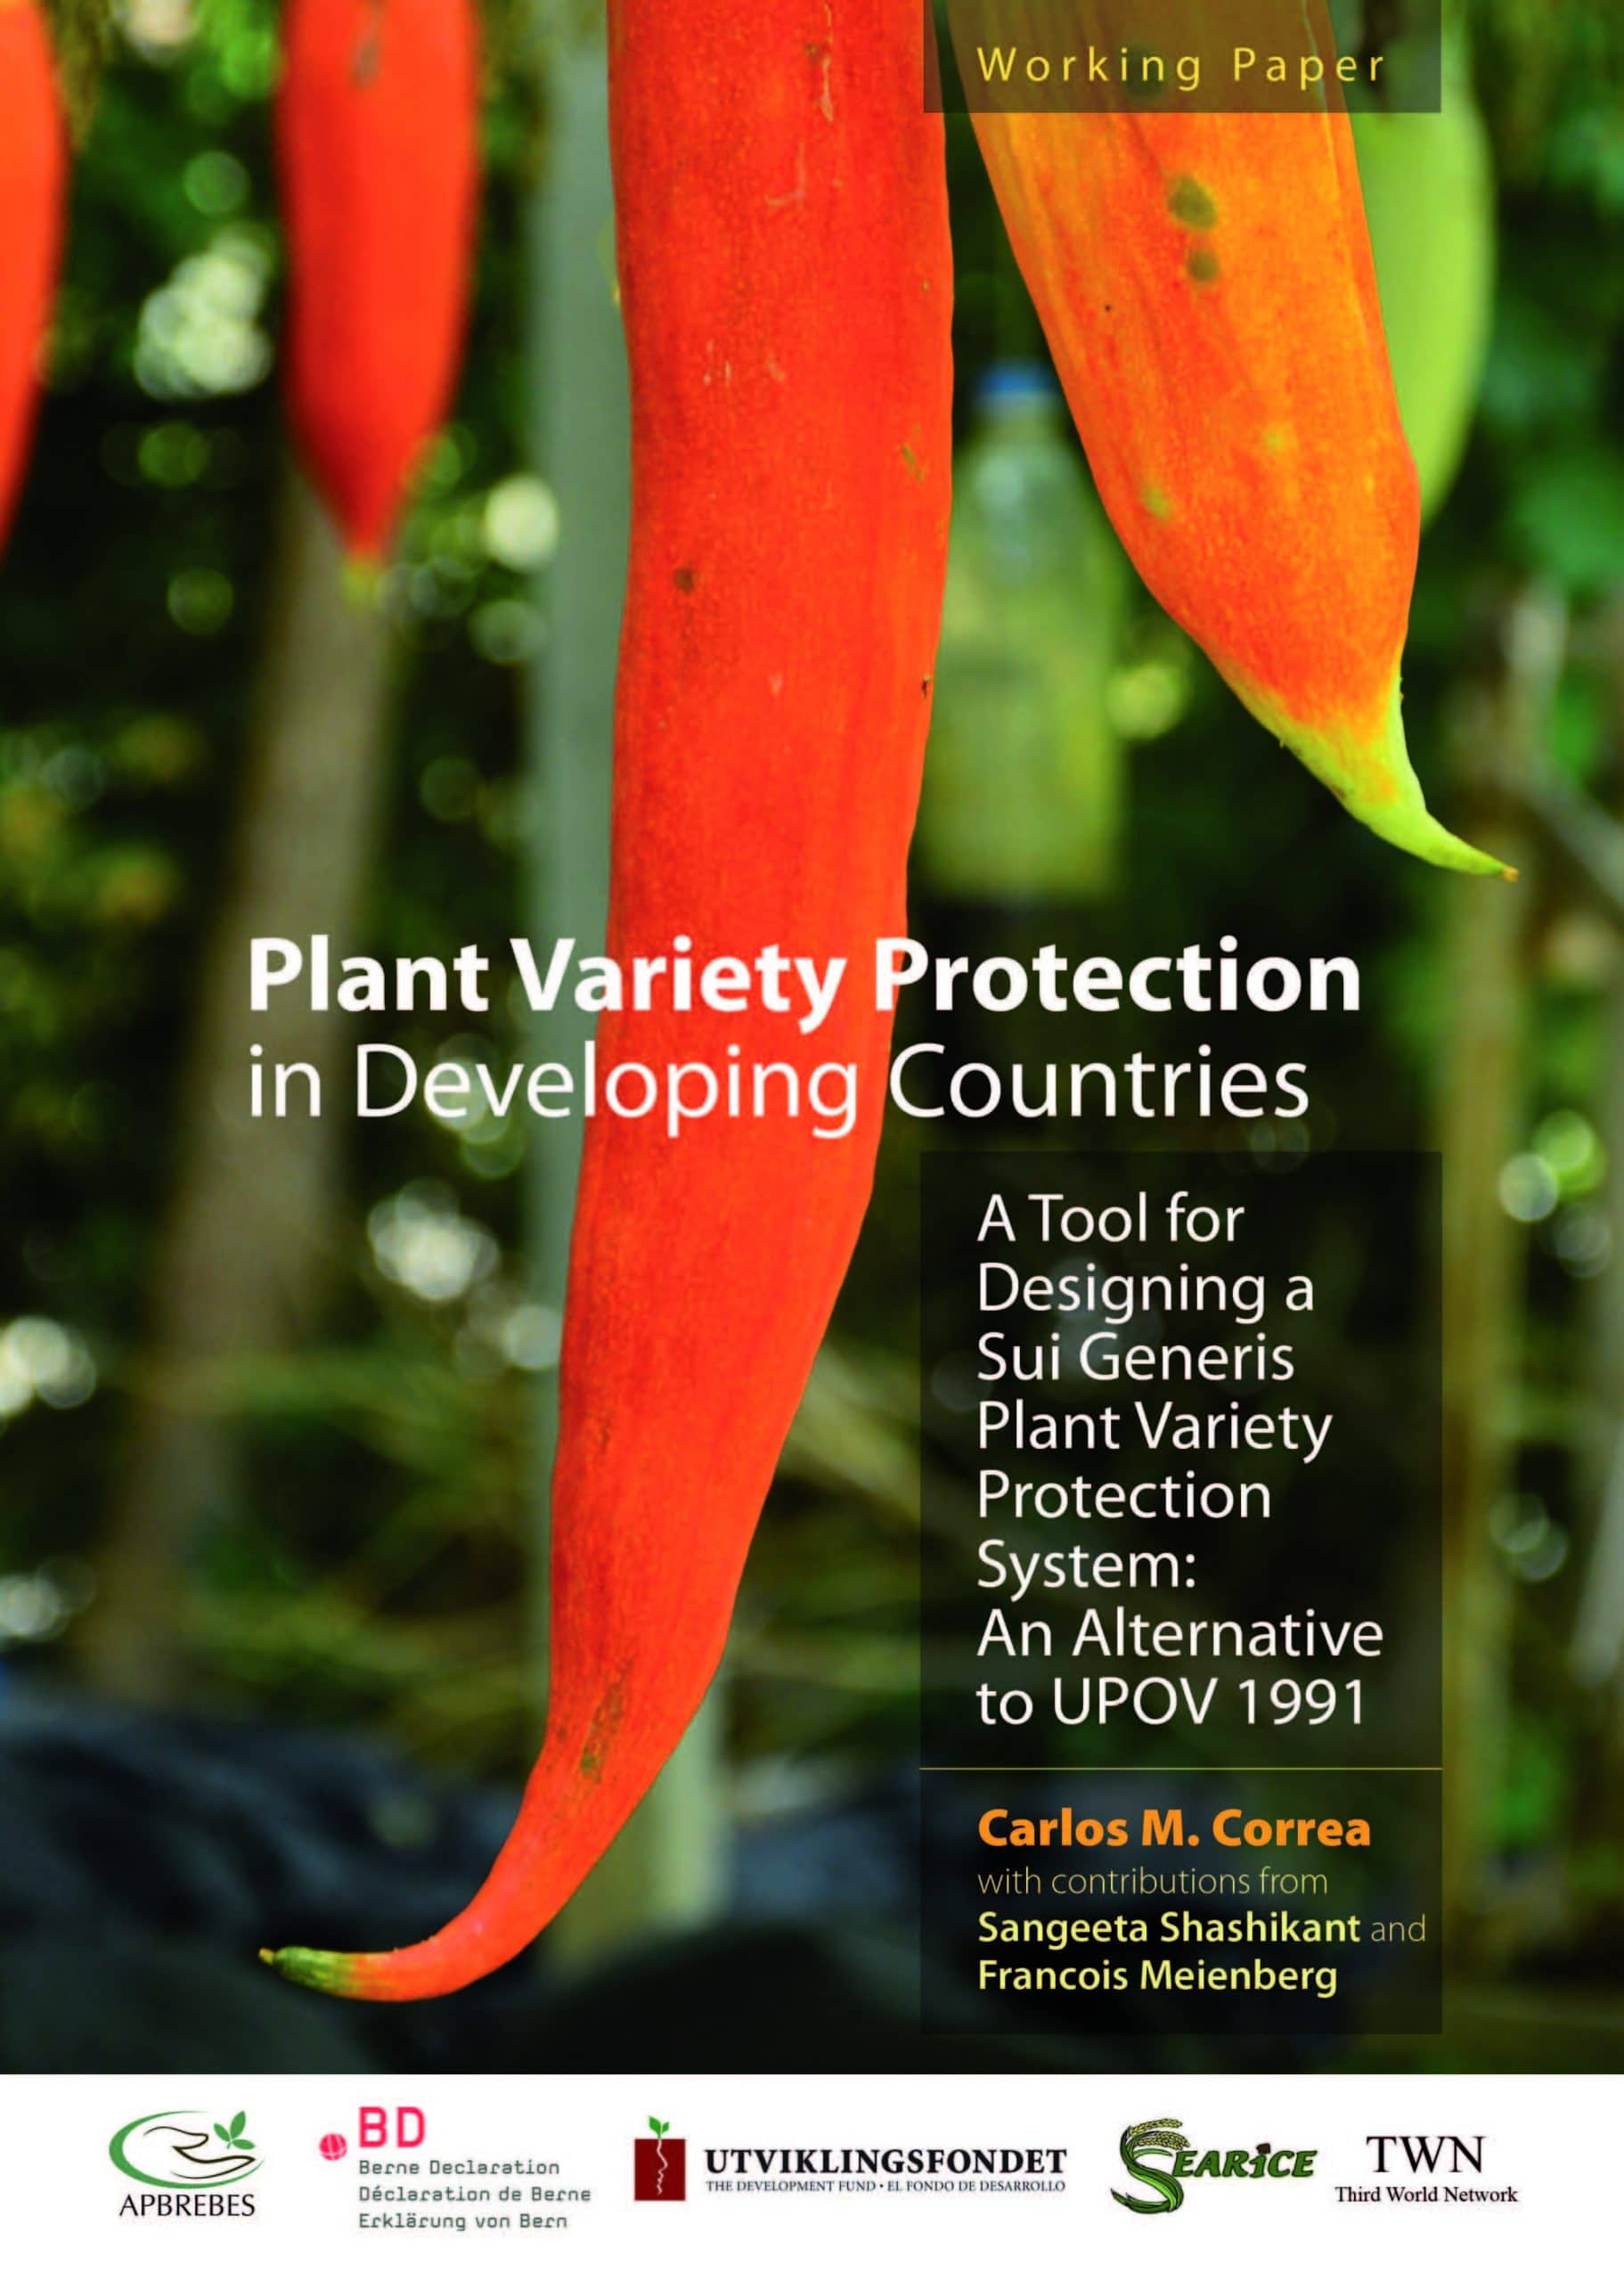 Plant Variety Protection in Developing Countries : A Tool for Designing a Sui Generis Plant Variety Protection System